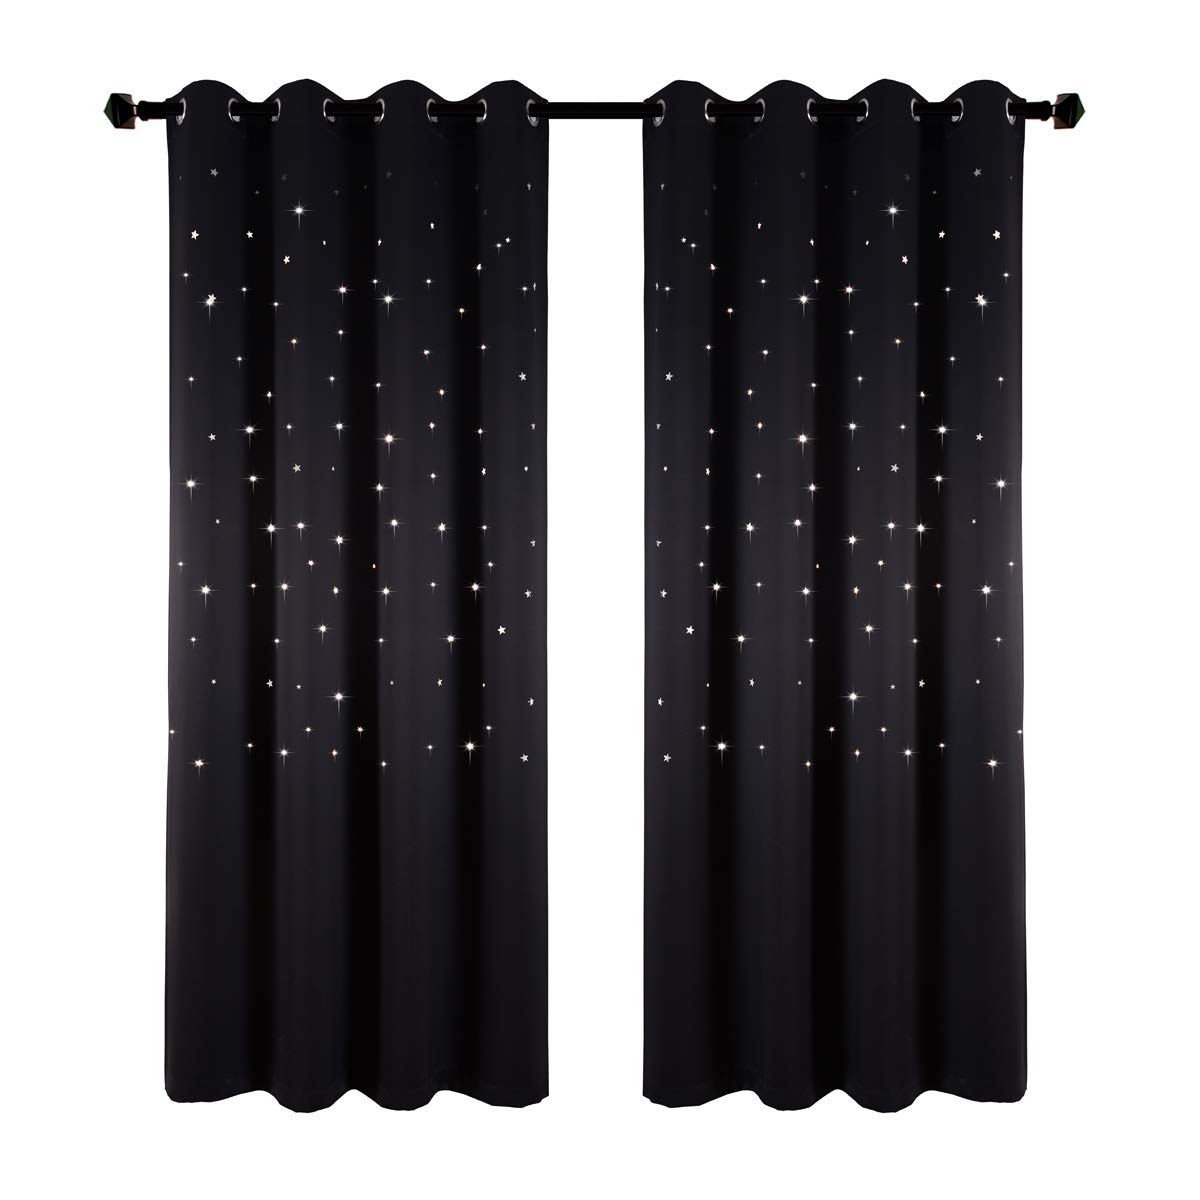 Grommet Top Blackout Curtains for Space Theme Bedroom, Kotile 2 Panels Thermal Insulated Glitter Stars Luxurious Soft Window Panels with Die Cut Twinkle for Kids Room (W52 X L84 inches, Royal Blue) Ketaishi Textile